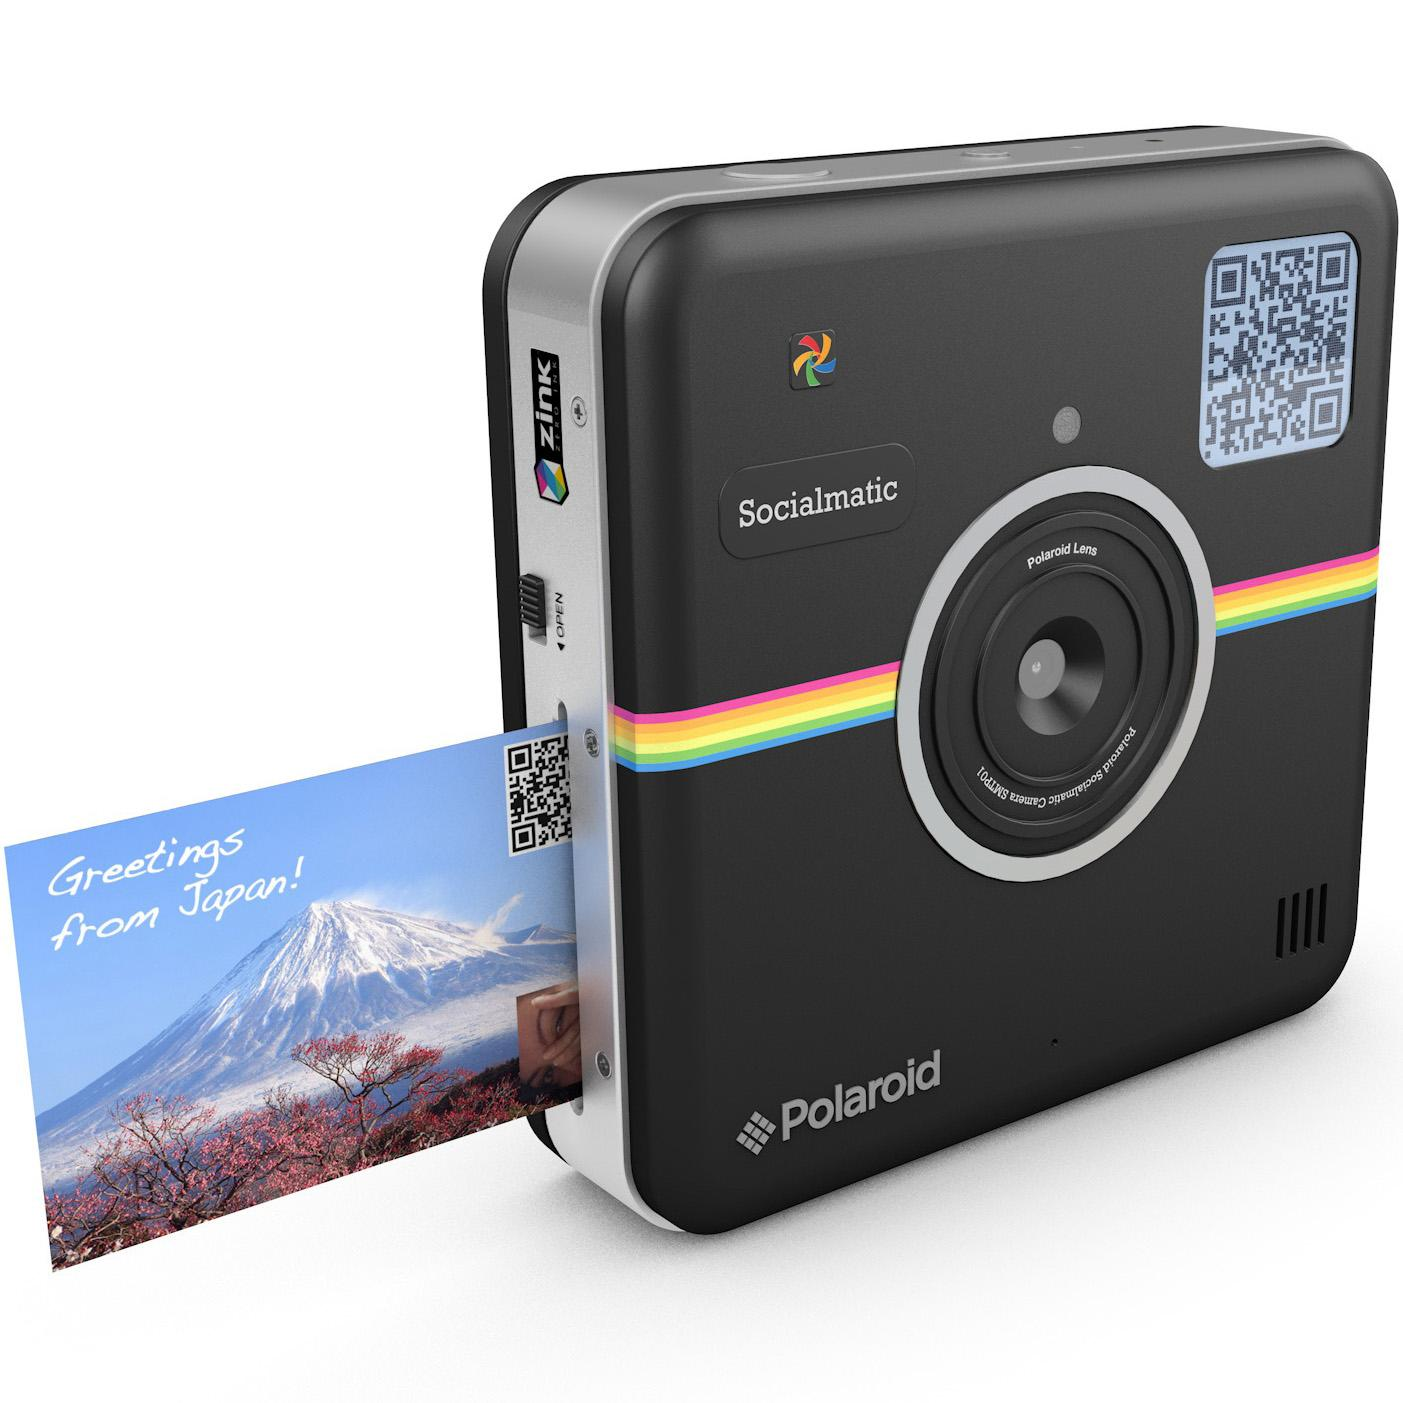 Amazon.com : Polaroid Socialmatic Instant Digital Camera (Black ...